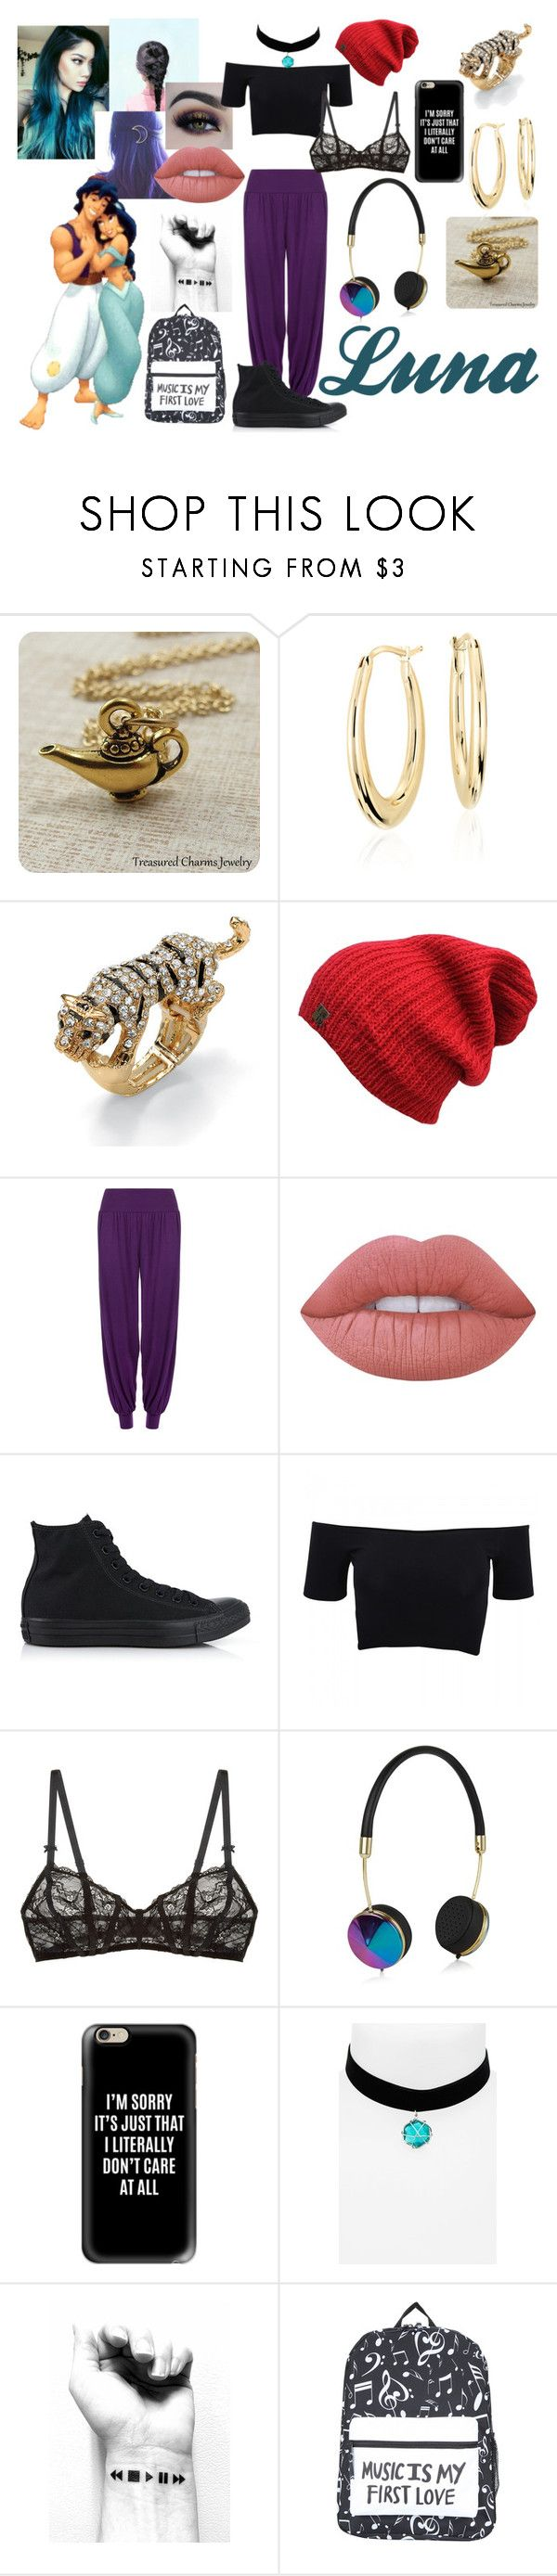 """""""Luna (Aladdin & Jasmine Daughter)"""" by sleepyfangirl ❤ liked on Polyvore featuring Manic Panic NYC, Blue Nile, Palm Beach Jewelry, BHCosmetics, WearAll, Lime Crime, Converse, American Apparel, Free People and Frends"""